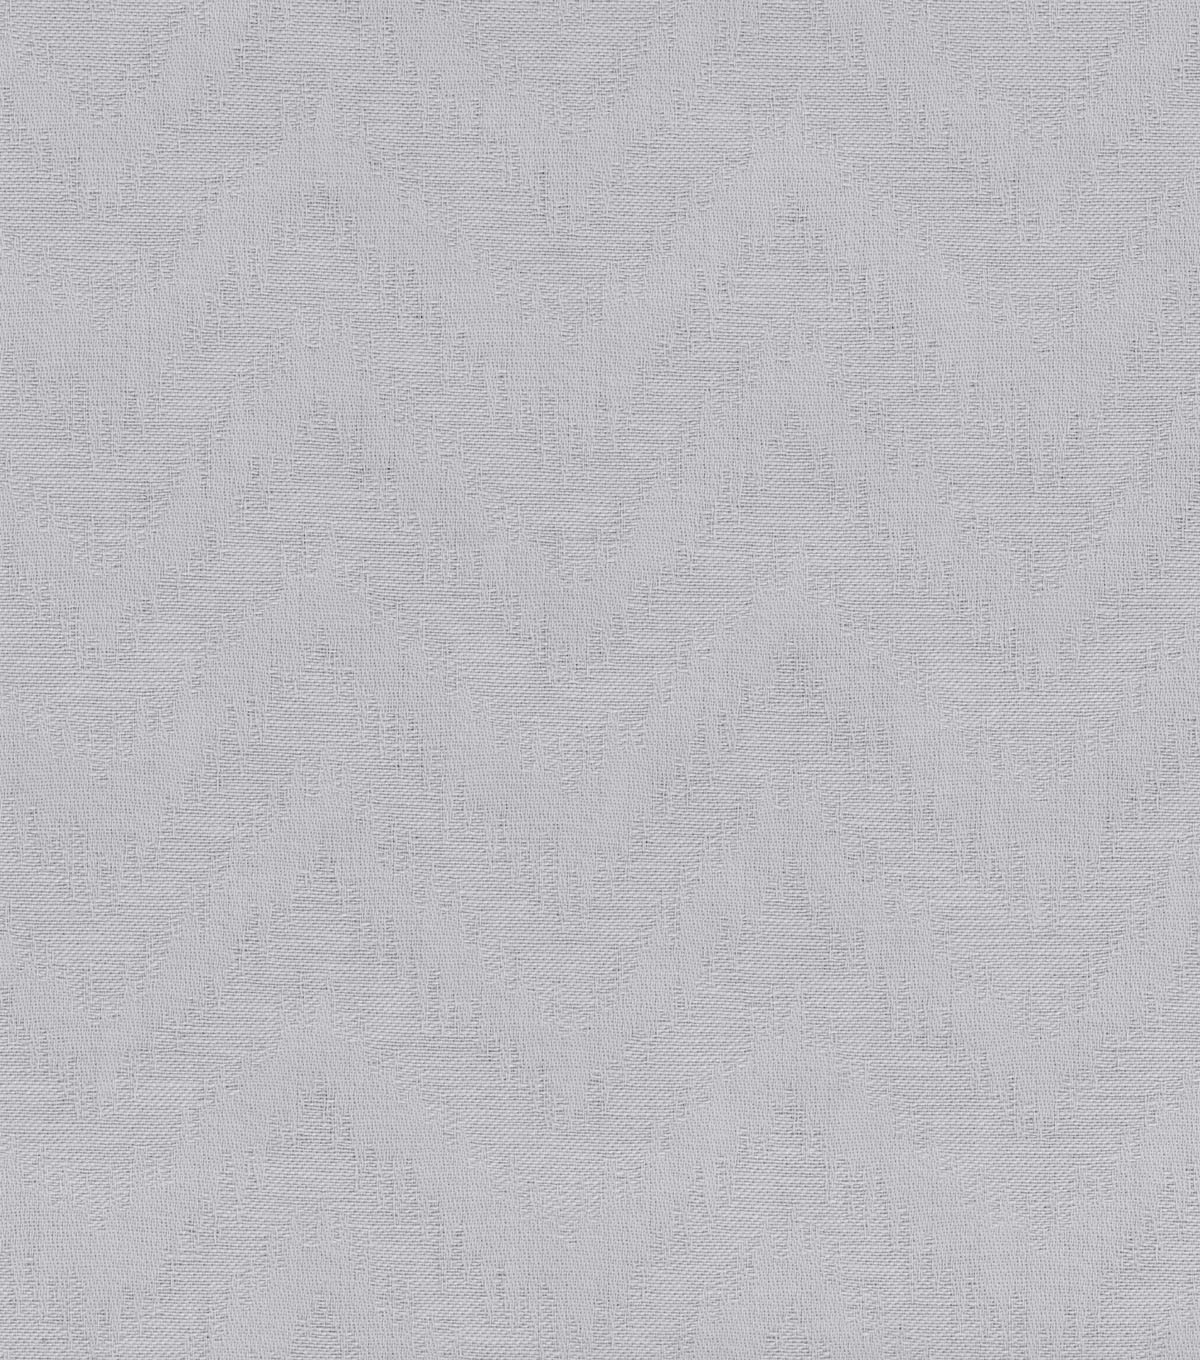 P/K Lifestyles Lightweight Decor Fabric 54\u0022-Peaks Lightweight Decor/Mineral